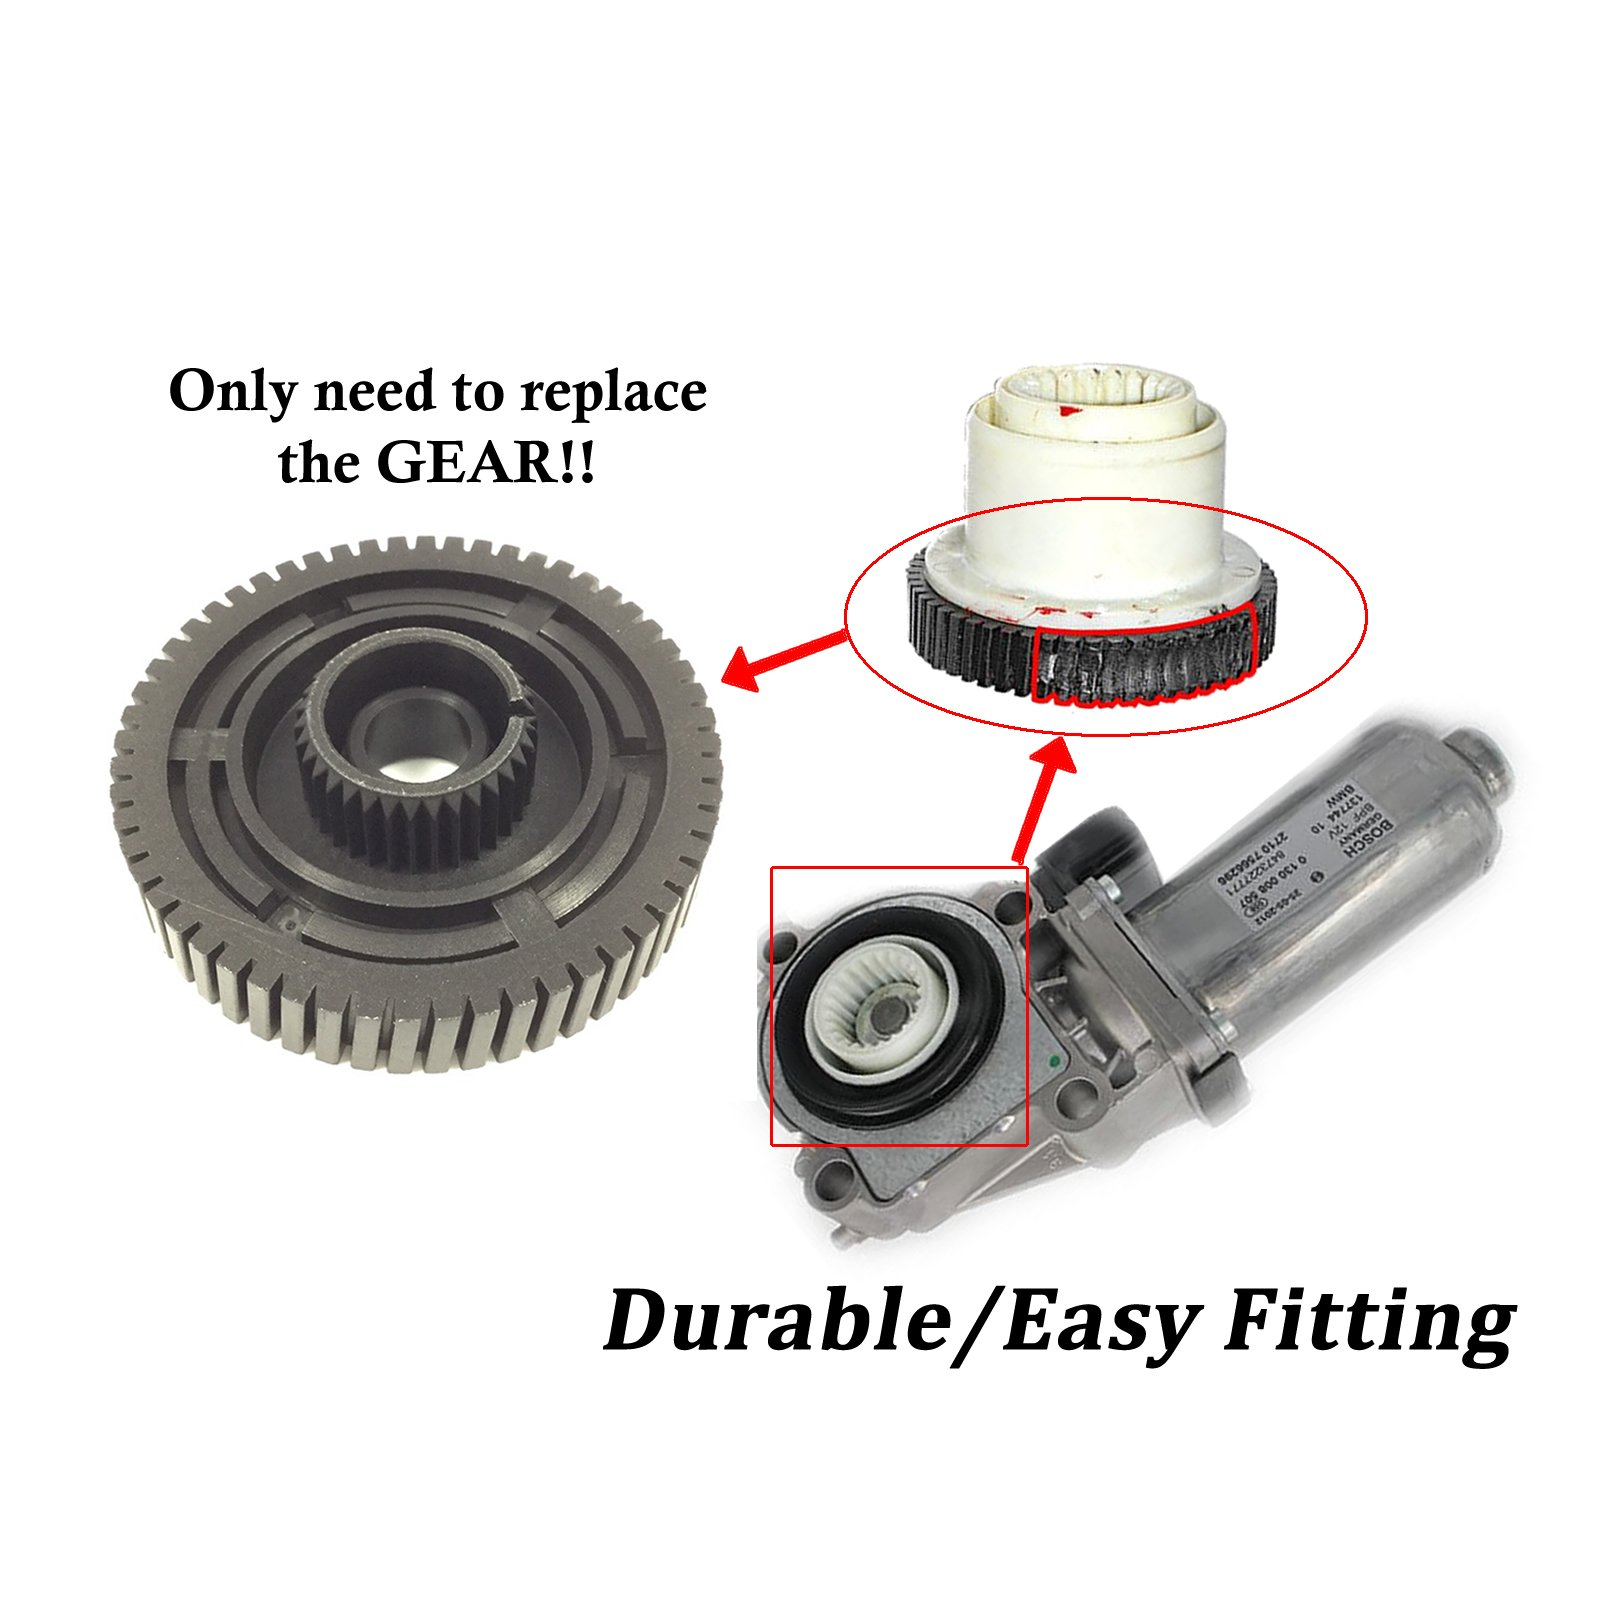 Cheap X3 Transfer Case Find Deals On Line At Chevy 261 Get Quotations Motor Gear For Bmw E53 X5 E83 X6 E71 27107568267